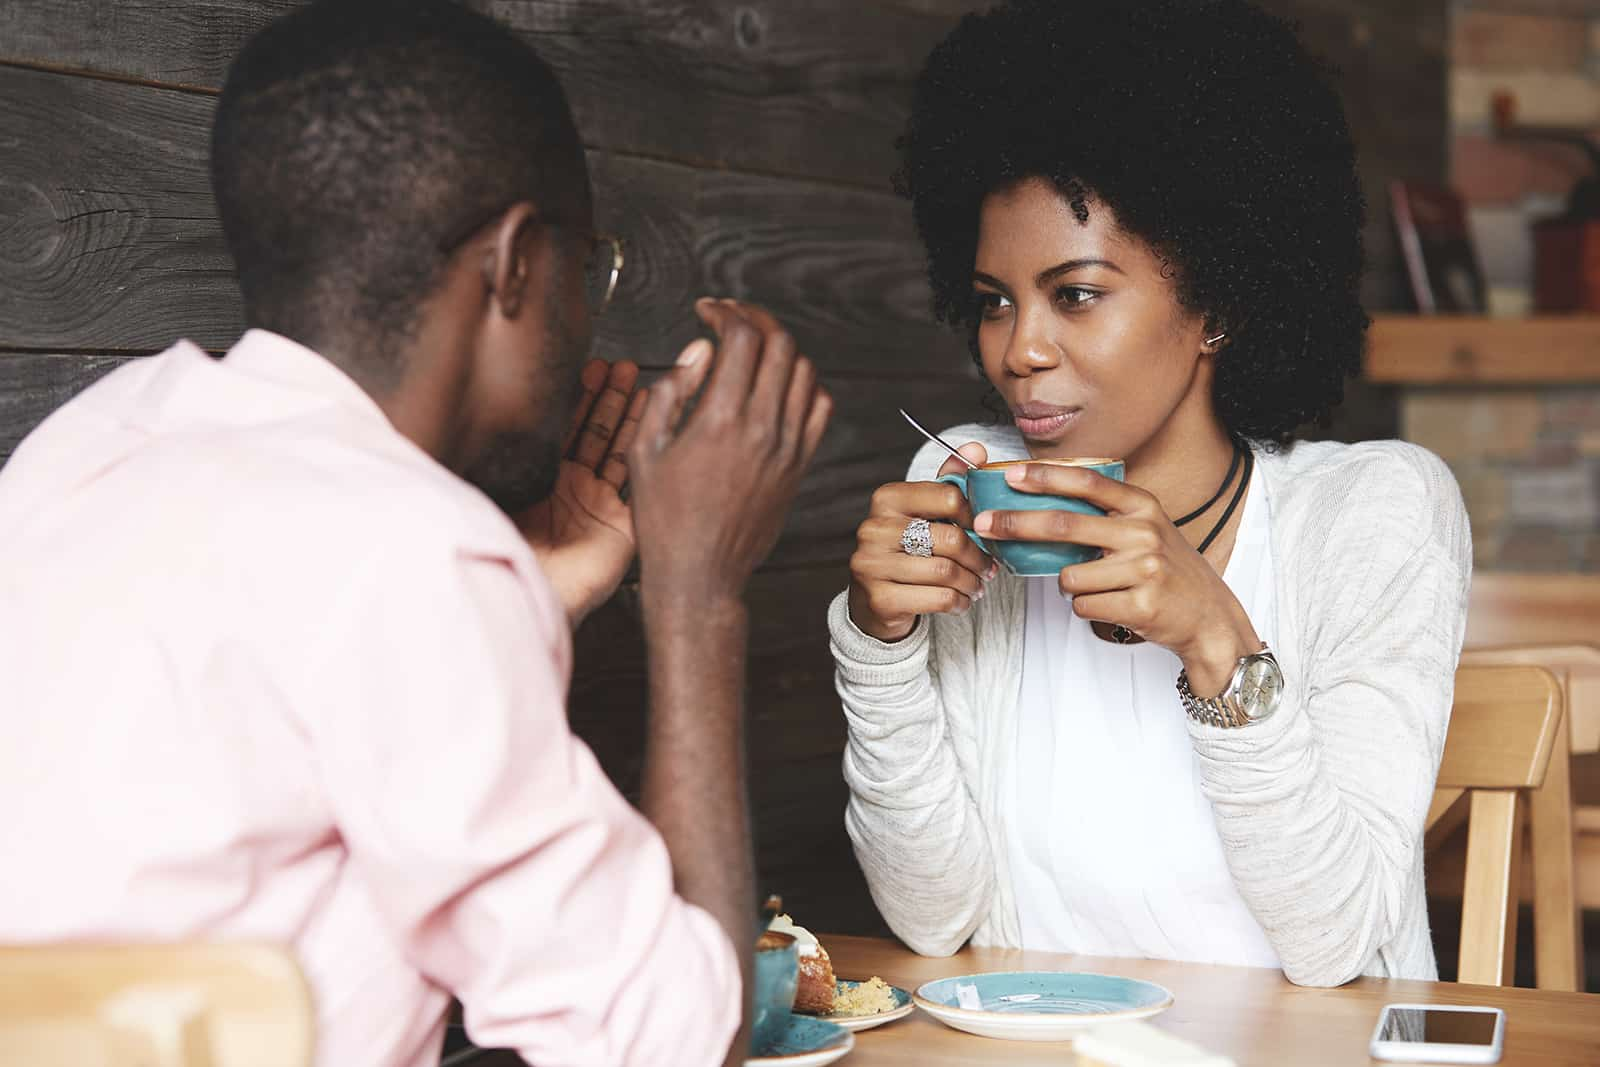 a man and woman talking in a cafe while drinking coffee